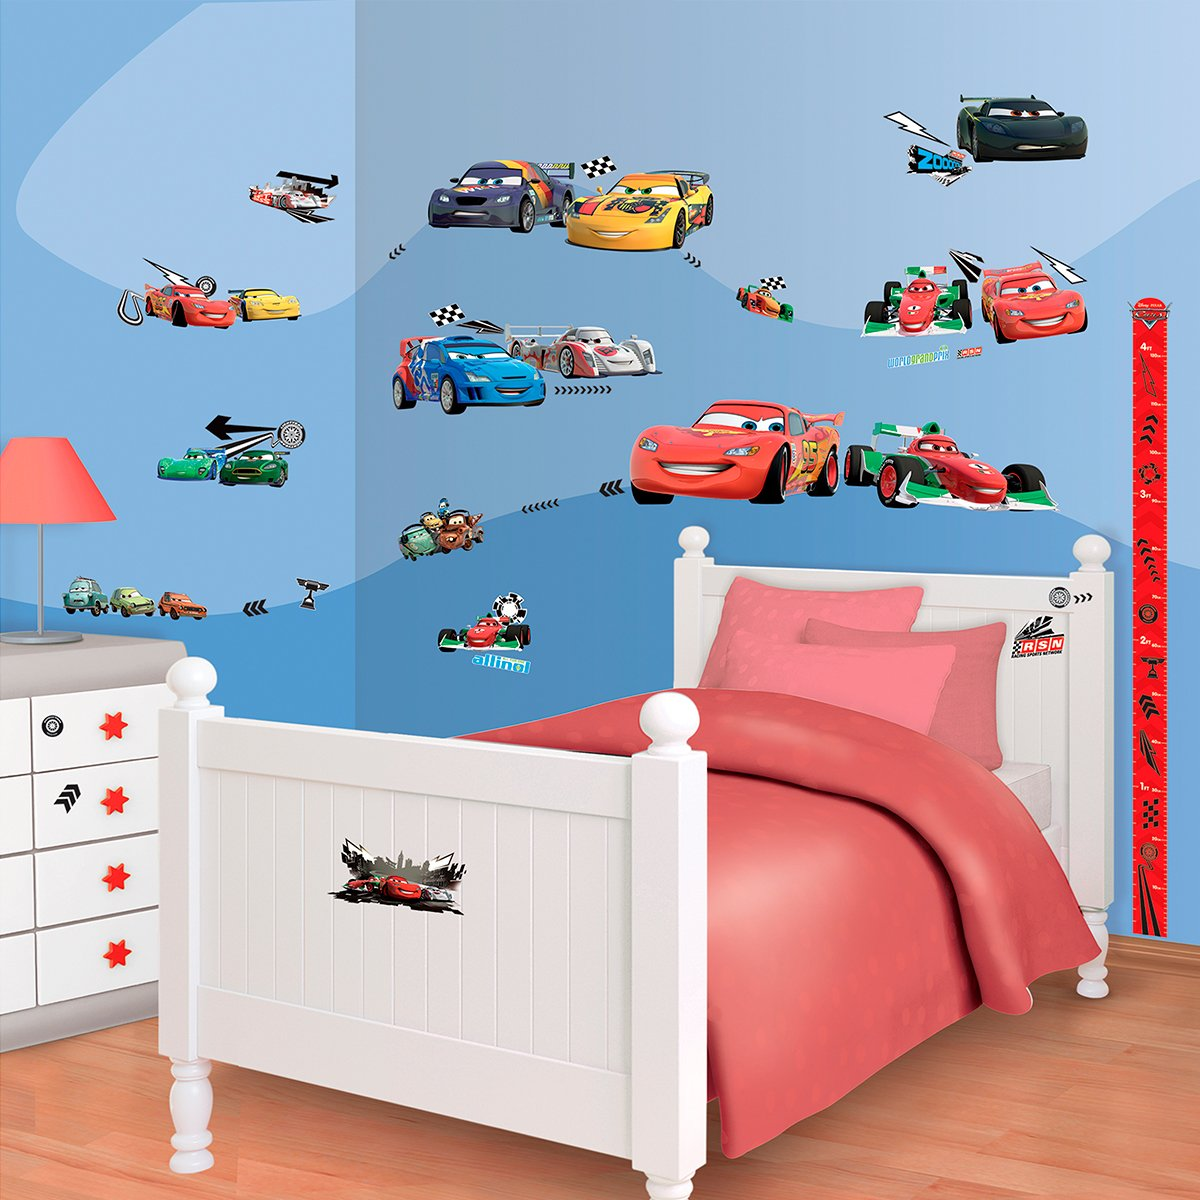 Walltastic Mini Kit Disney Cars bestellen